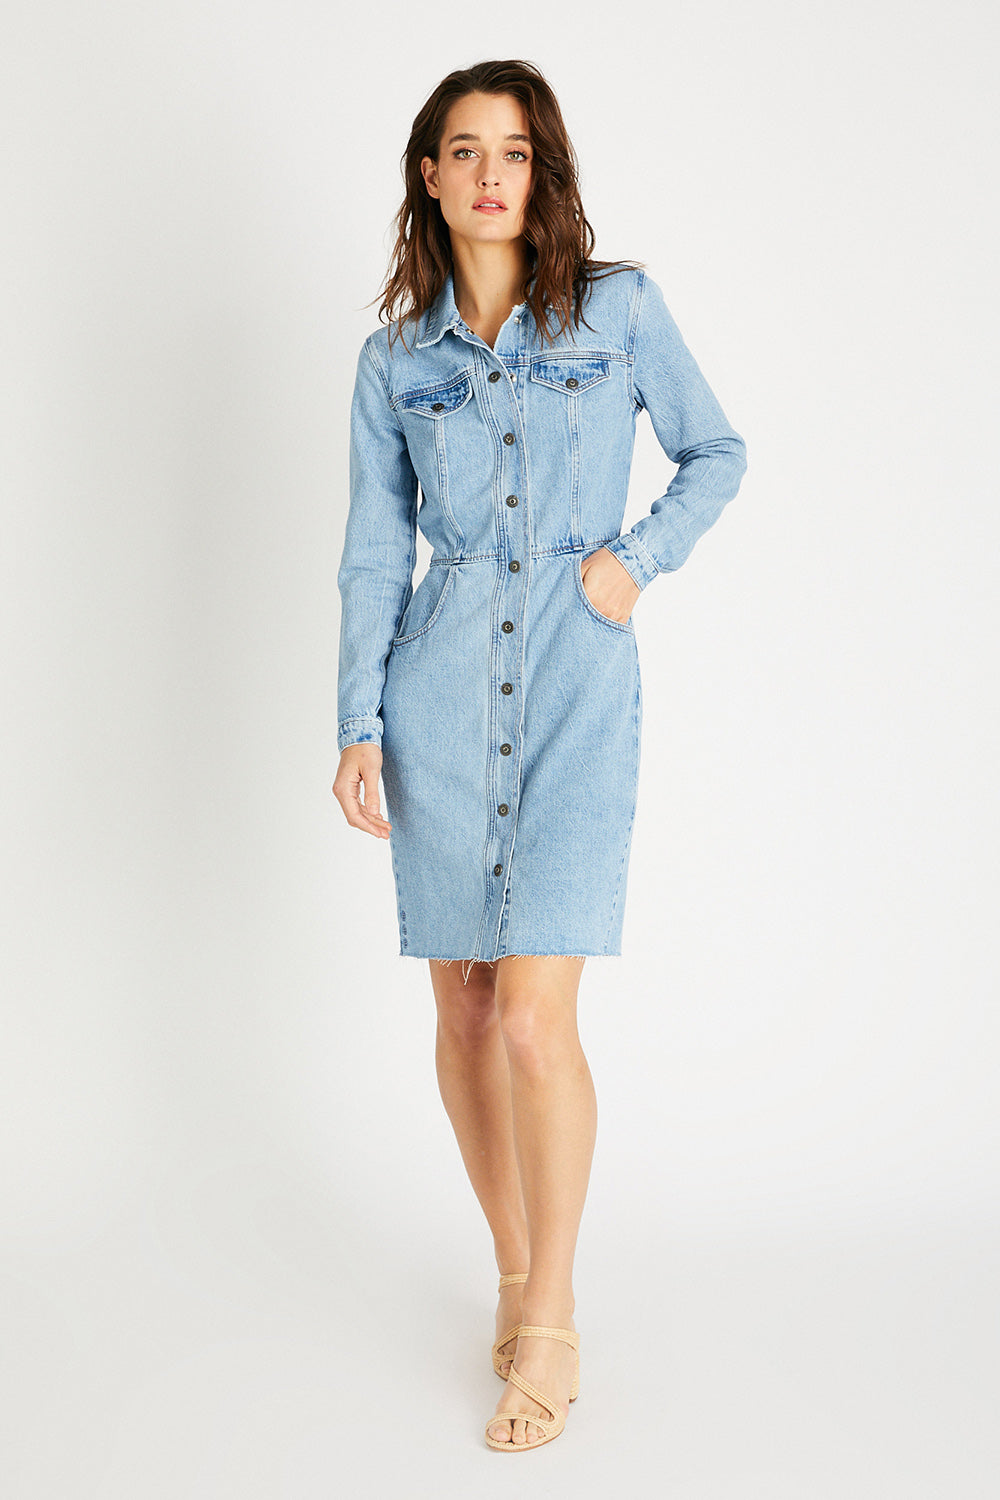 Jordyn Denim Dress - Ice Blue Indigo